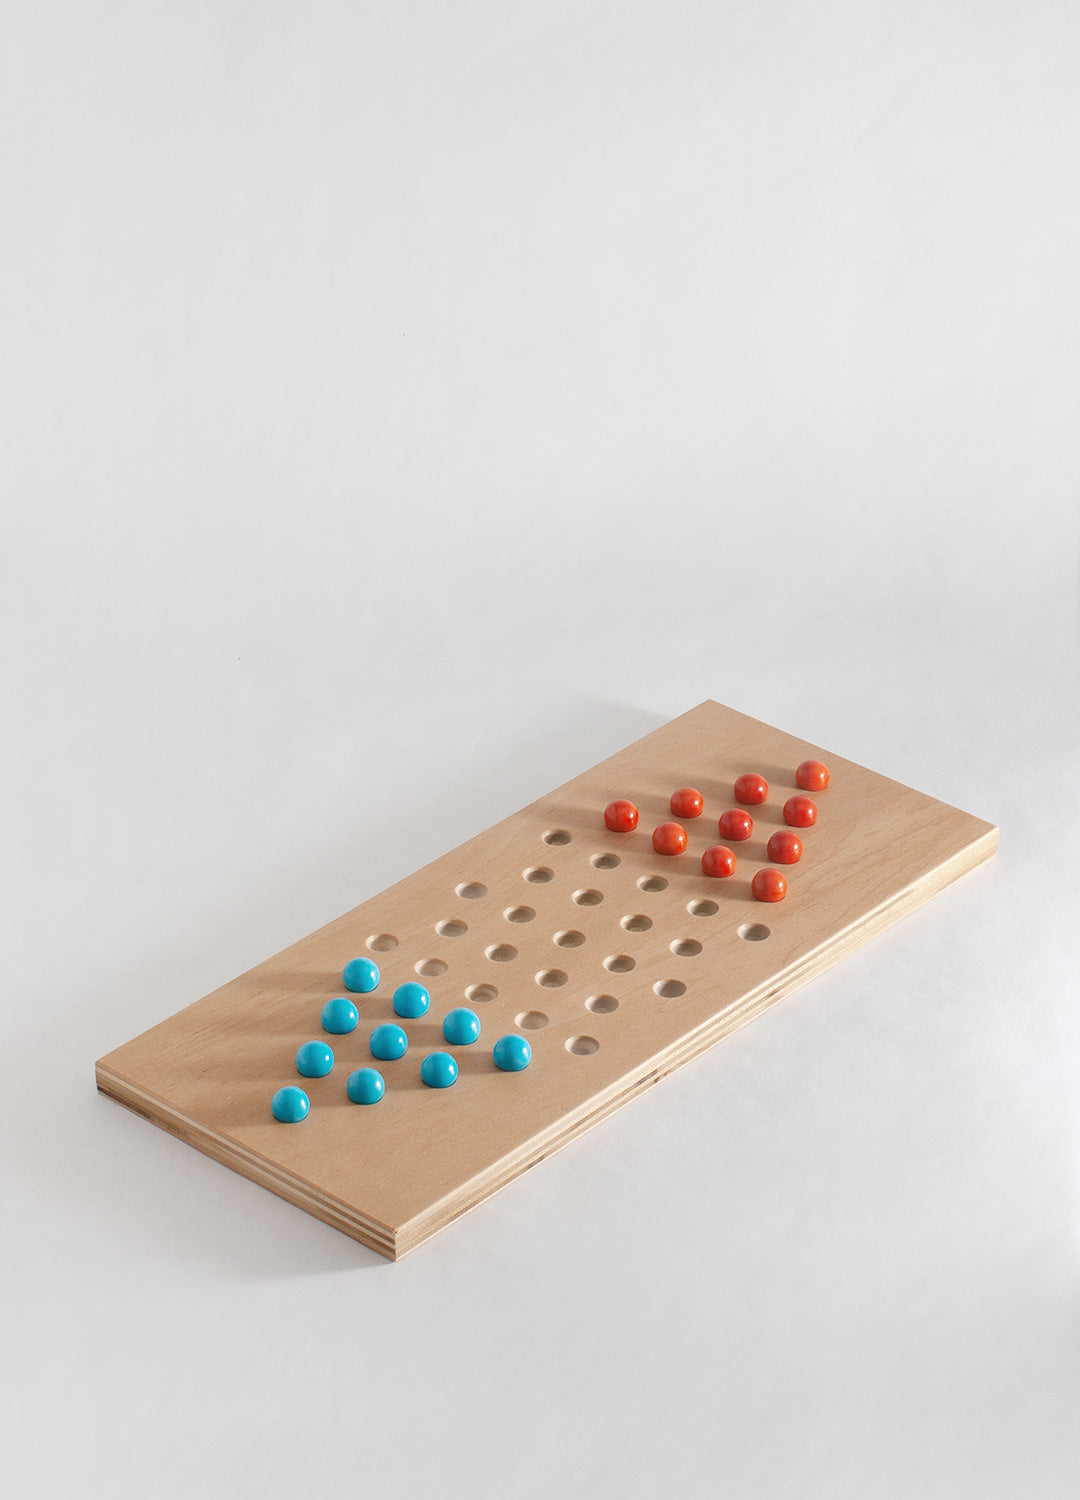 Chinese Checkers - Light Blue & Red Orange